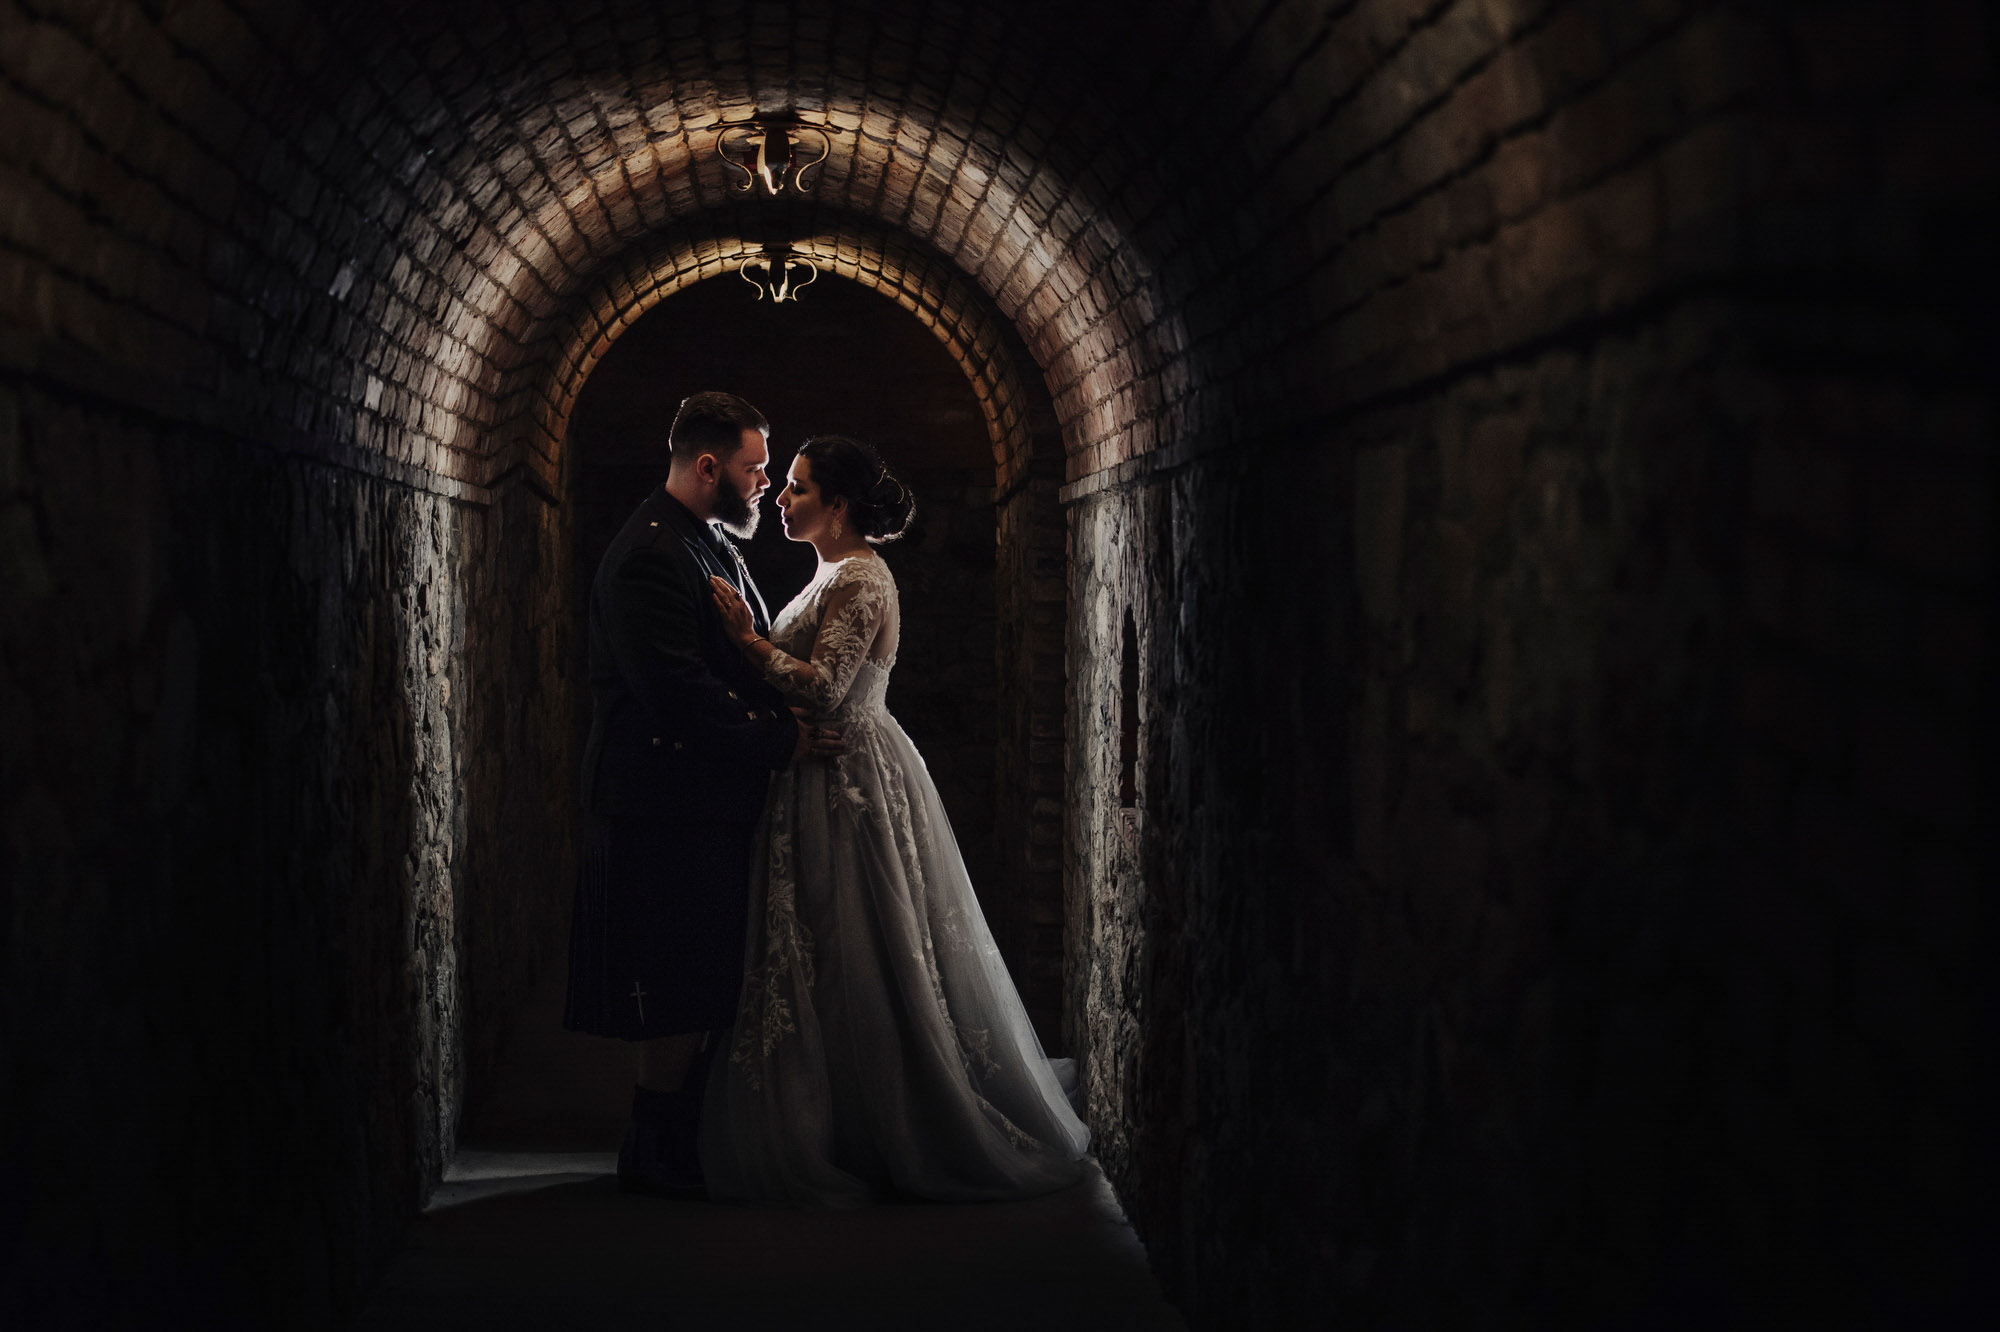 Couple in window-lit archway - photo by Jerry Ghionis